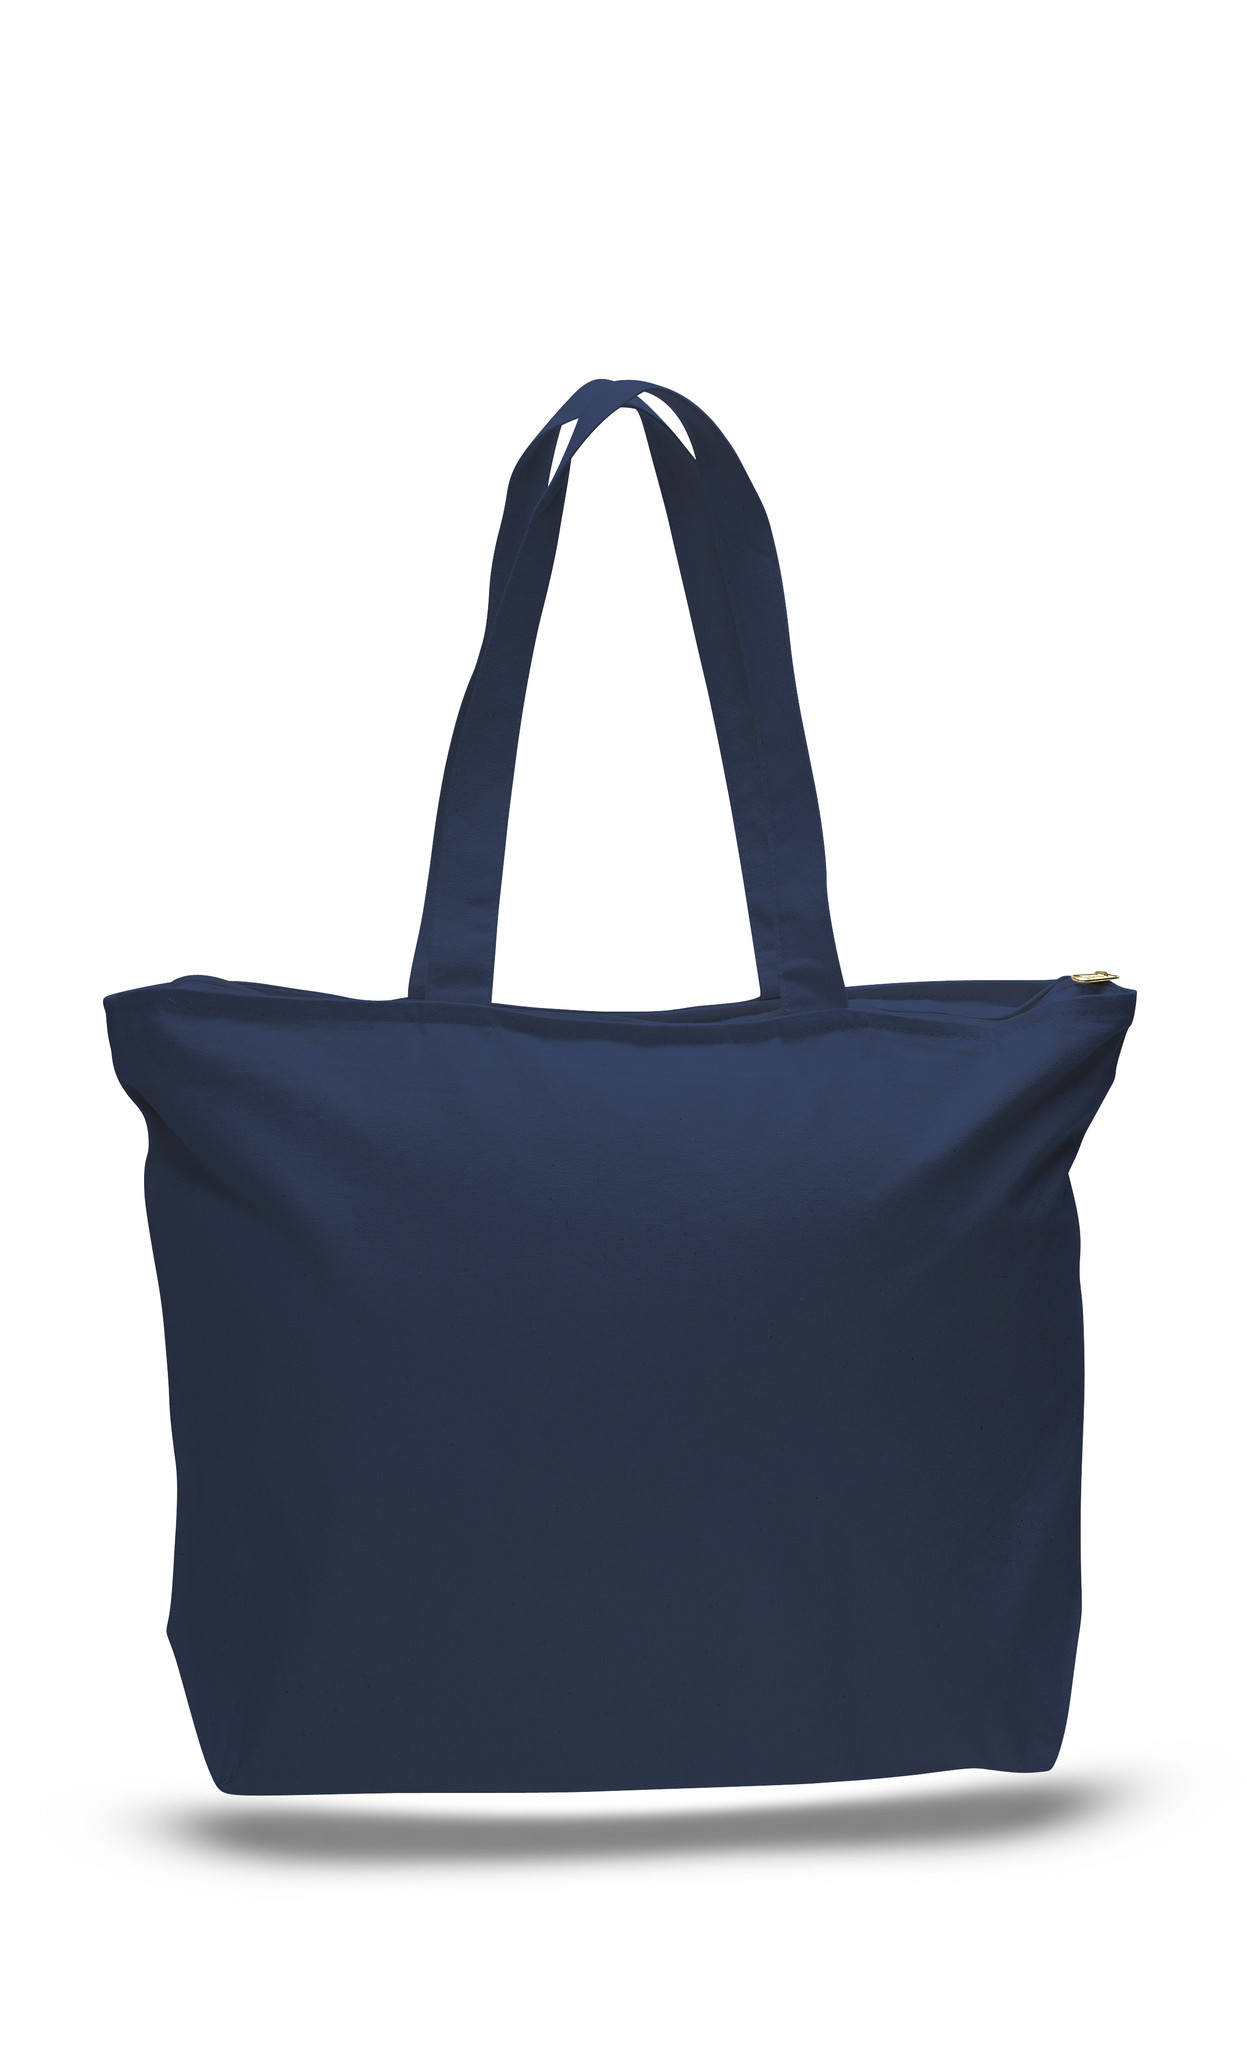 Strong Canvas Tote Bag with Zipper Pocket and Long Handles ...